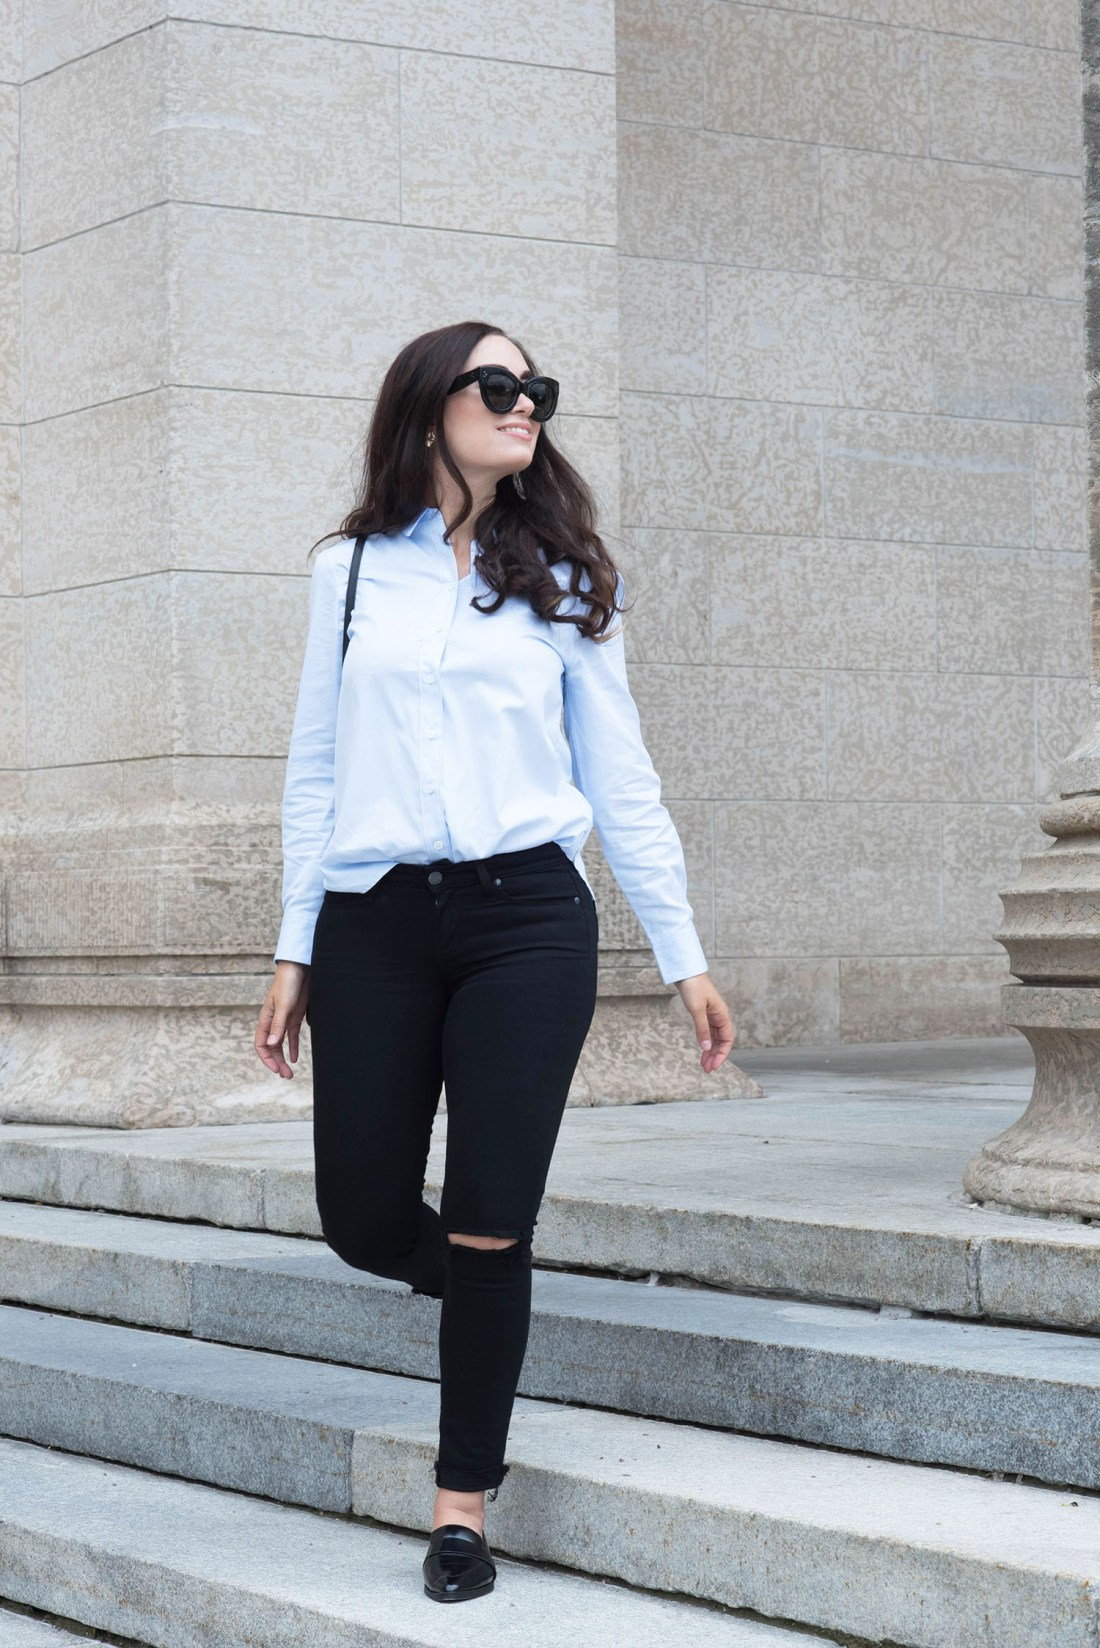 Canadian fashion blogger Cee Fardoe of Coco & Vera walks down a flight of stairs wearing an Equipment cotton blouse and Paige Denim jeans